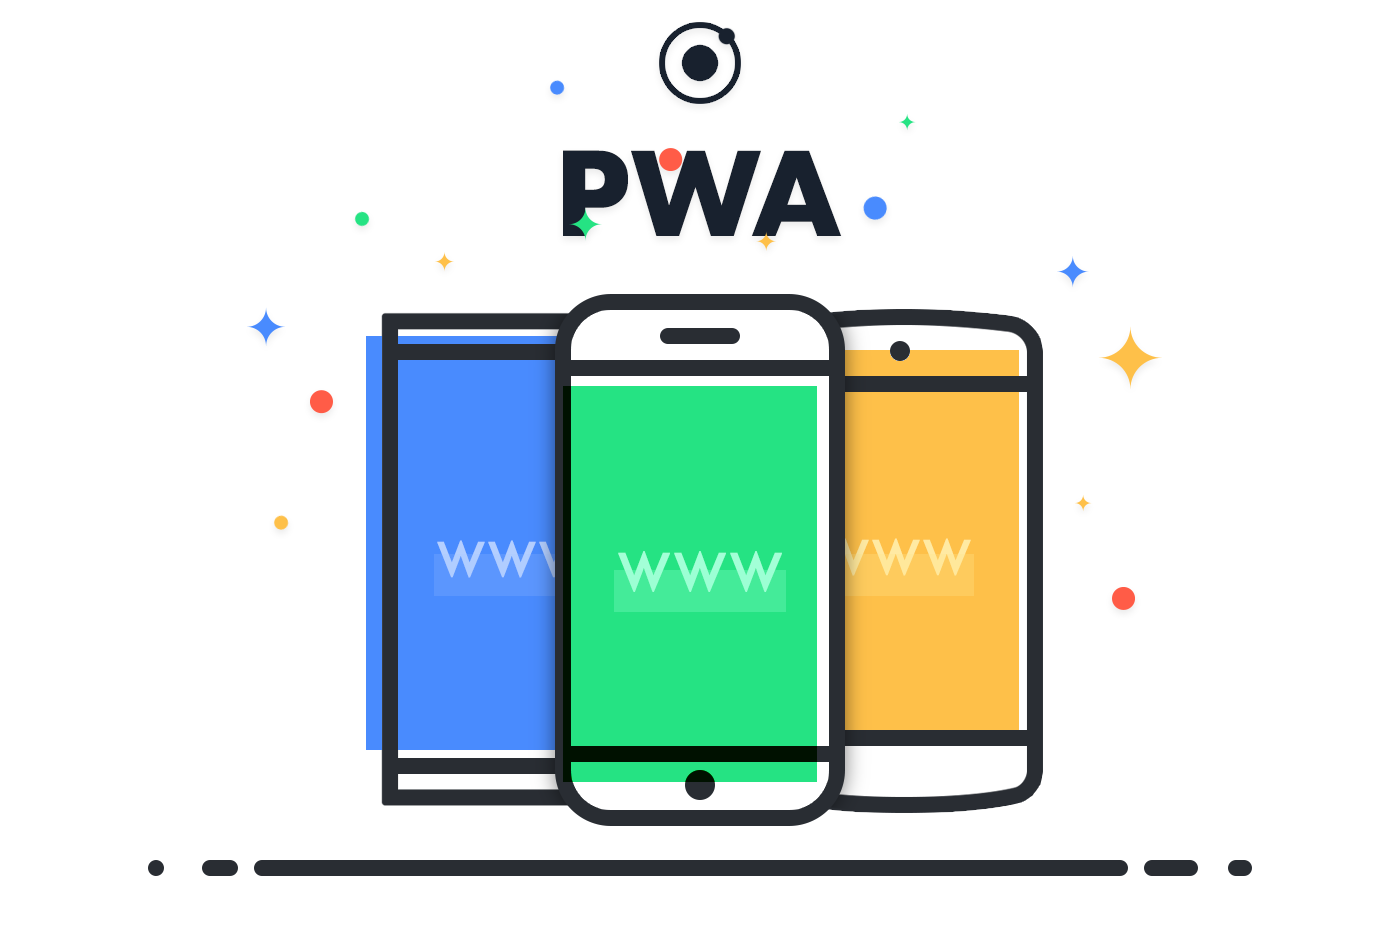 How to create a Progressive Web App (PWA)